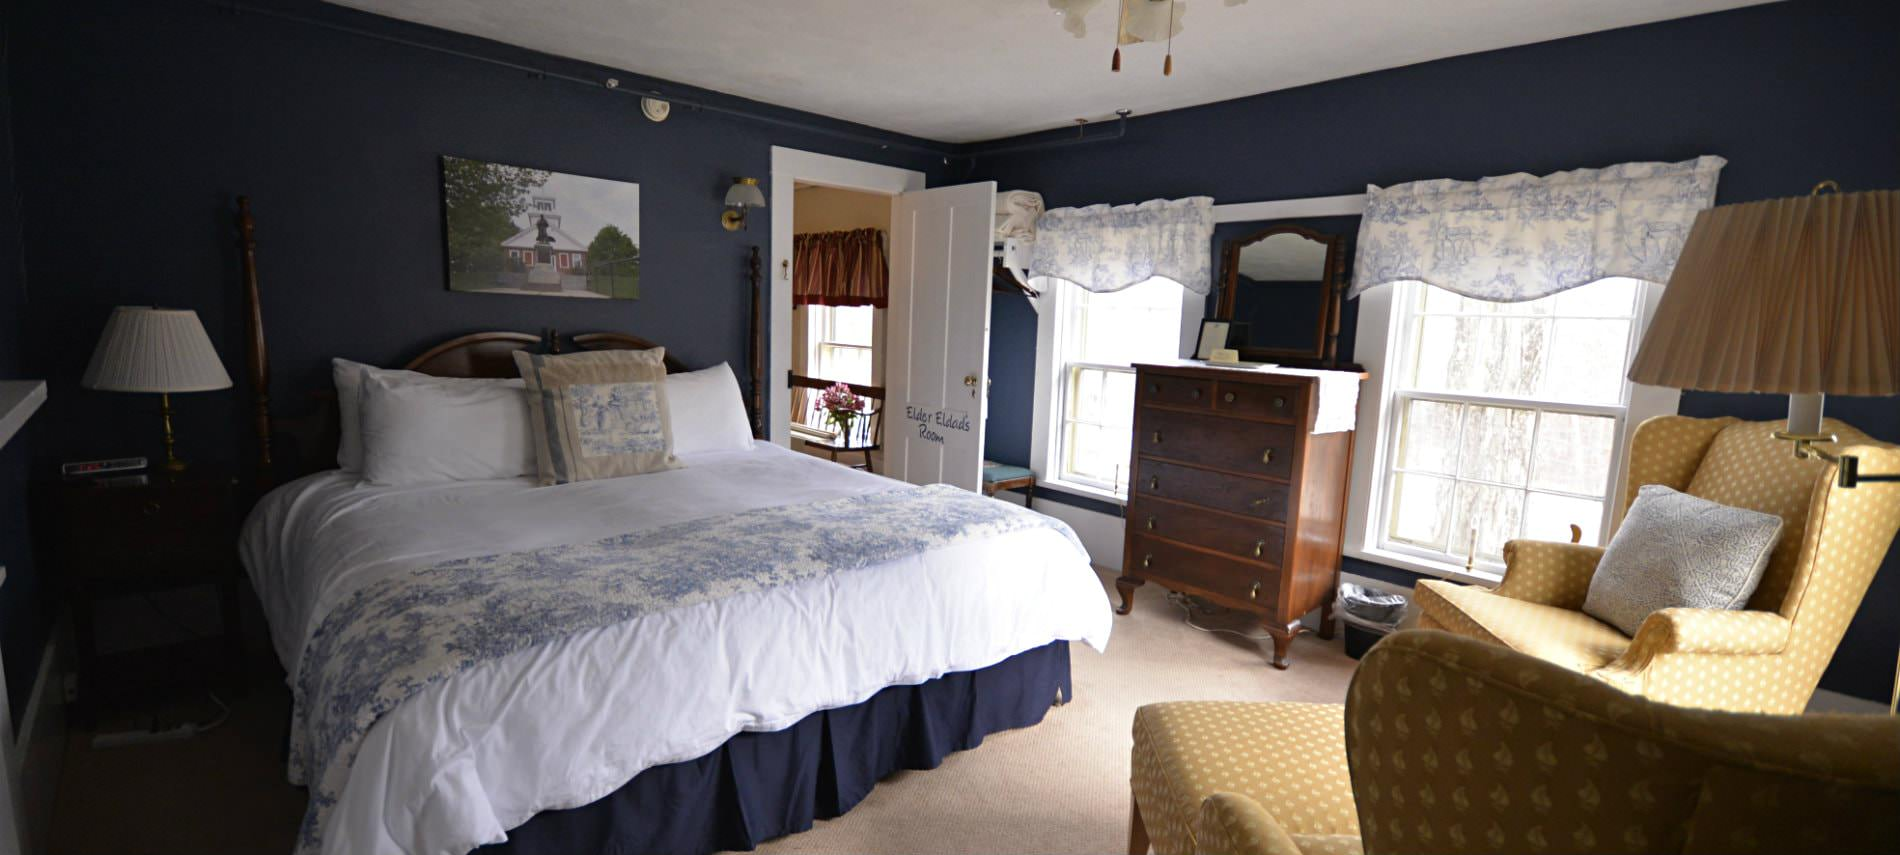 Spacious navy guest room, bed with white bedding, yellow upholstered wingback chairs, carpet, dresser and two windows